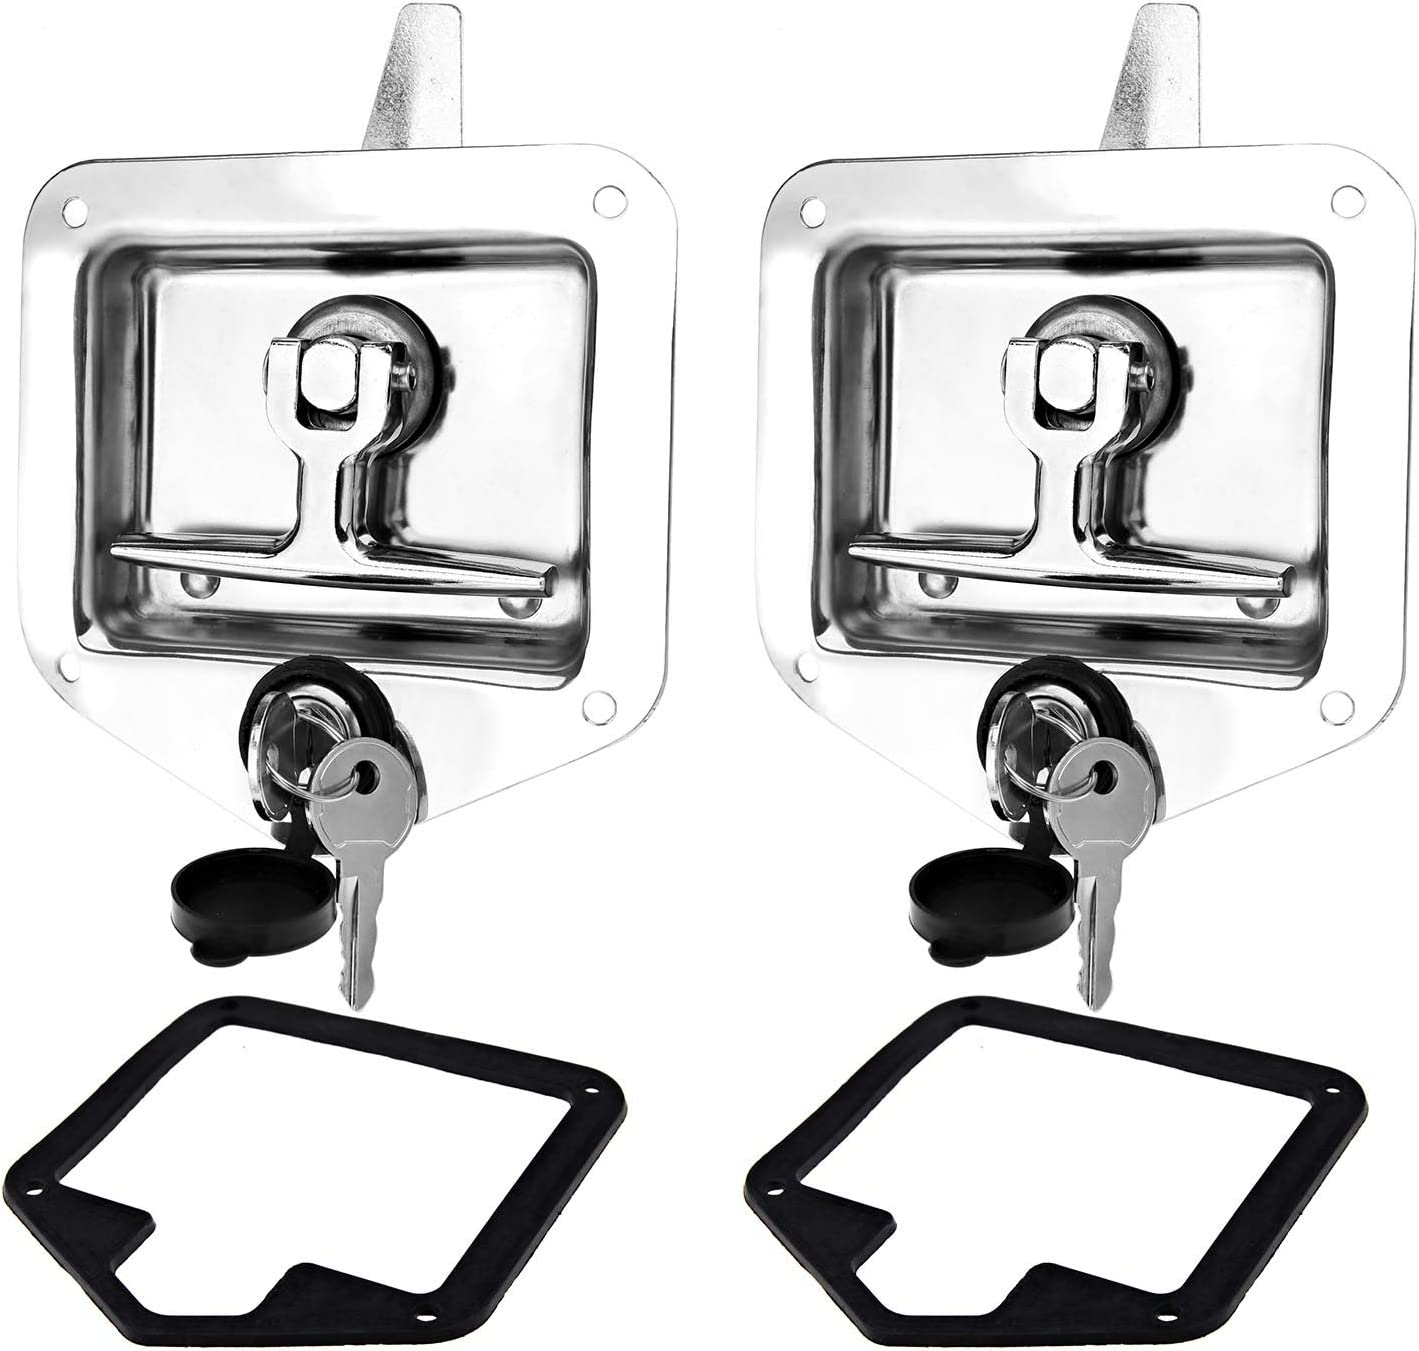 Creative-Idea 2Set T Very popular Handle Cam Latch L Lock with Dealing full price reduction Holes Mounting